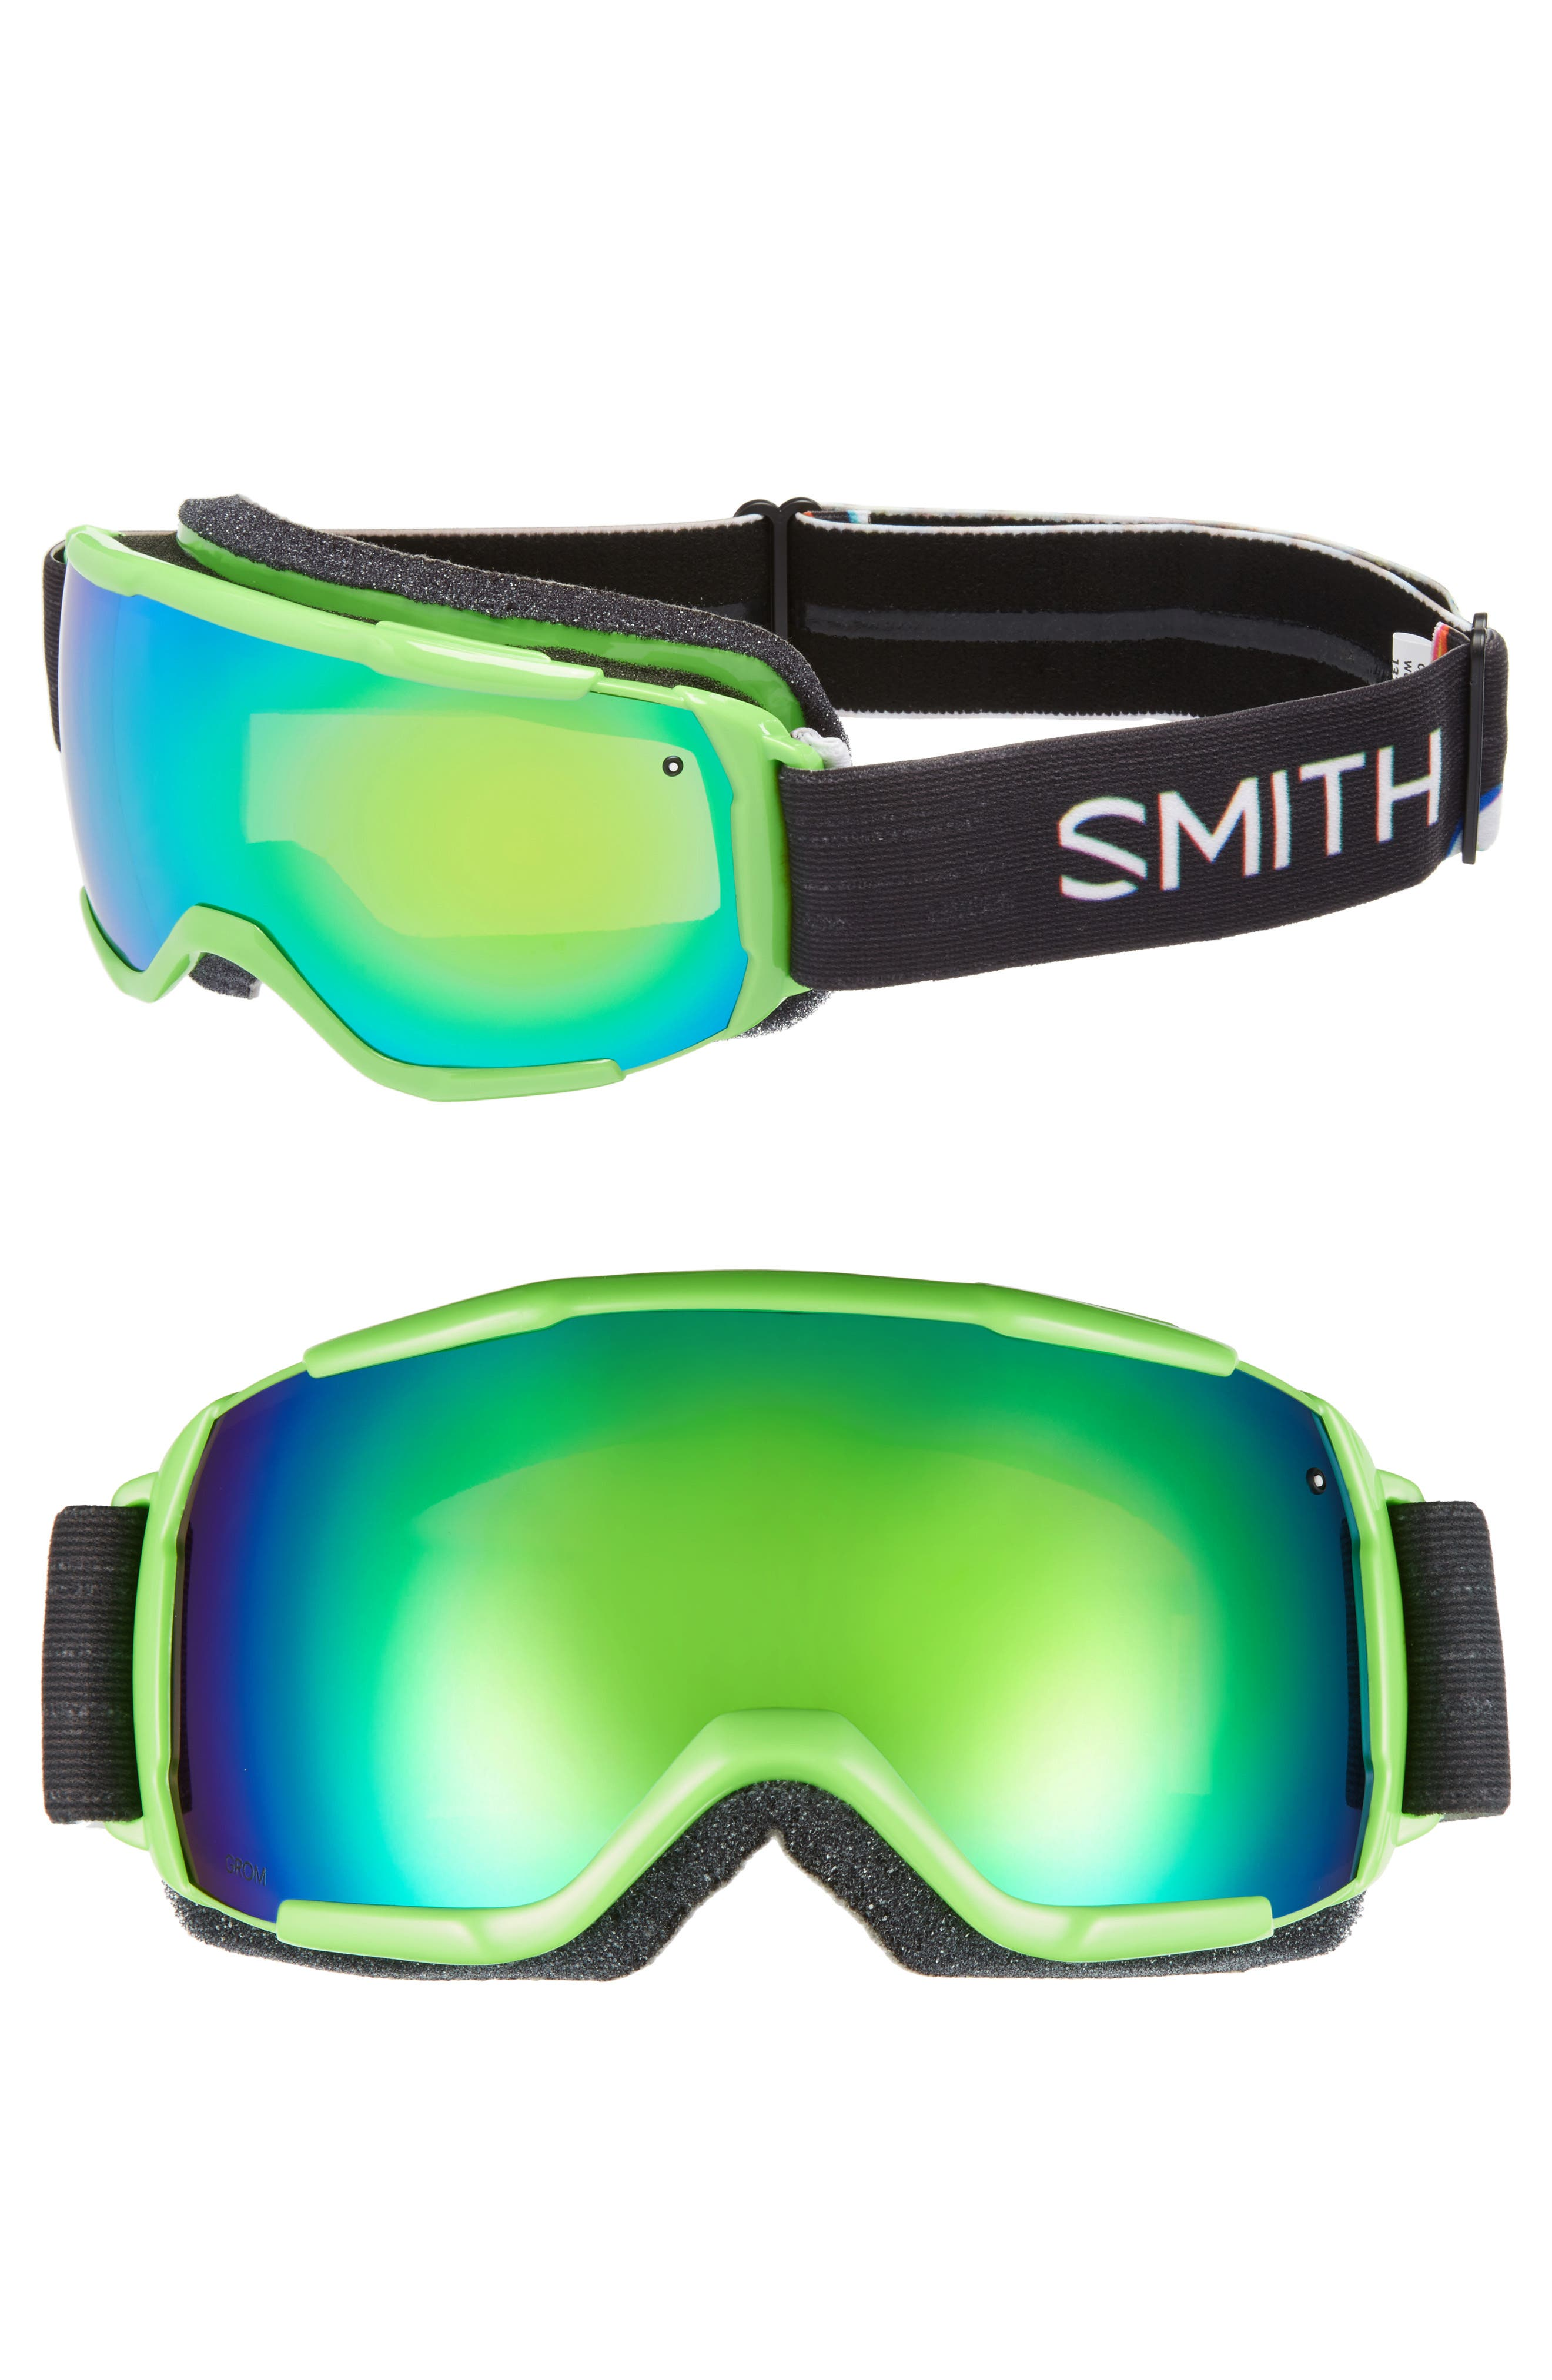 Grom Snow Goggles,                         Main,                         color, Reactor Tracking/ Mirror